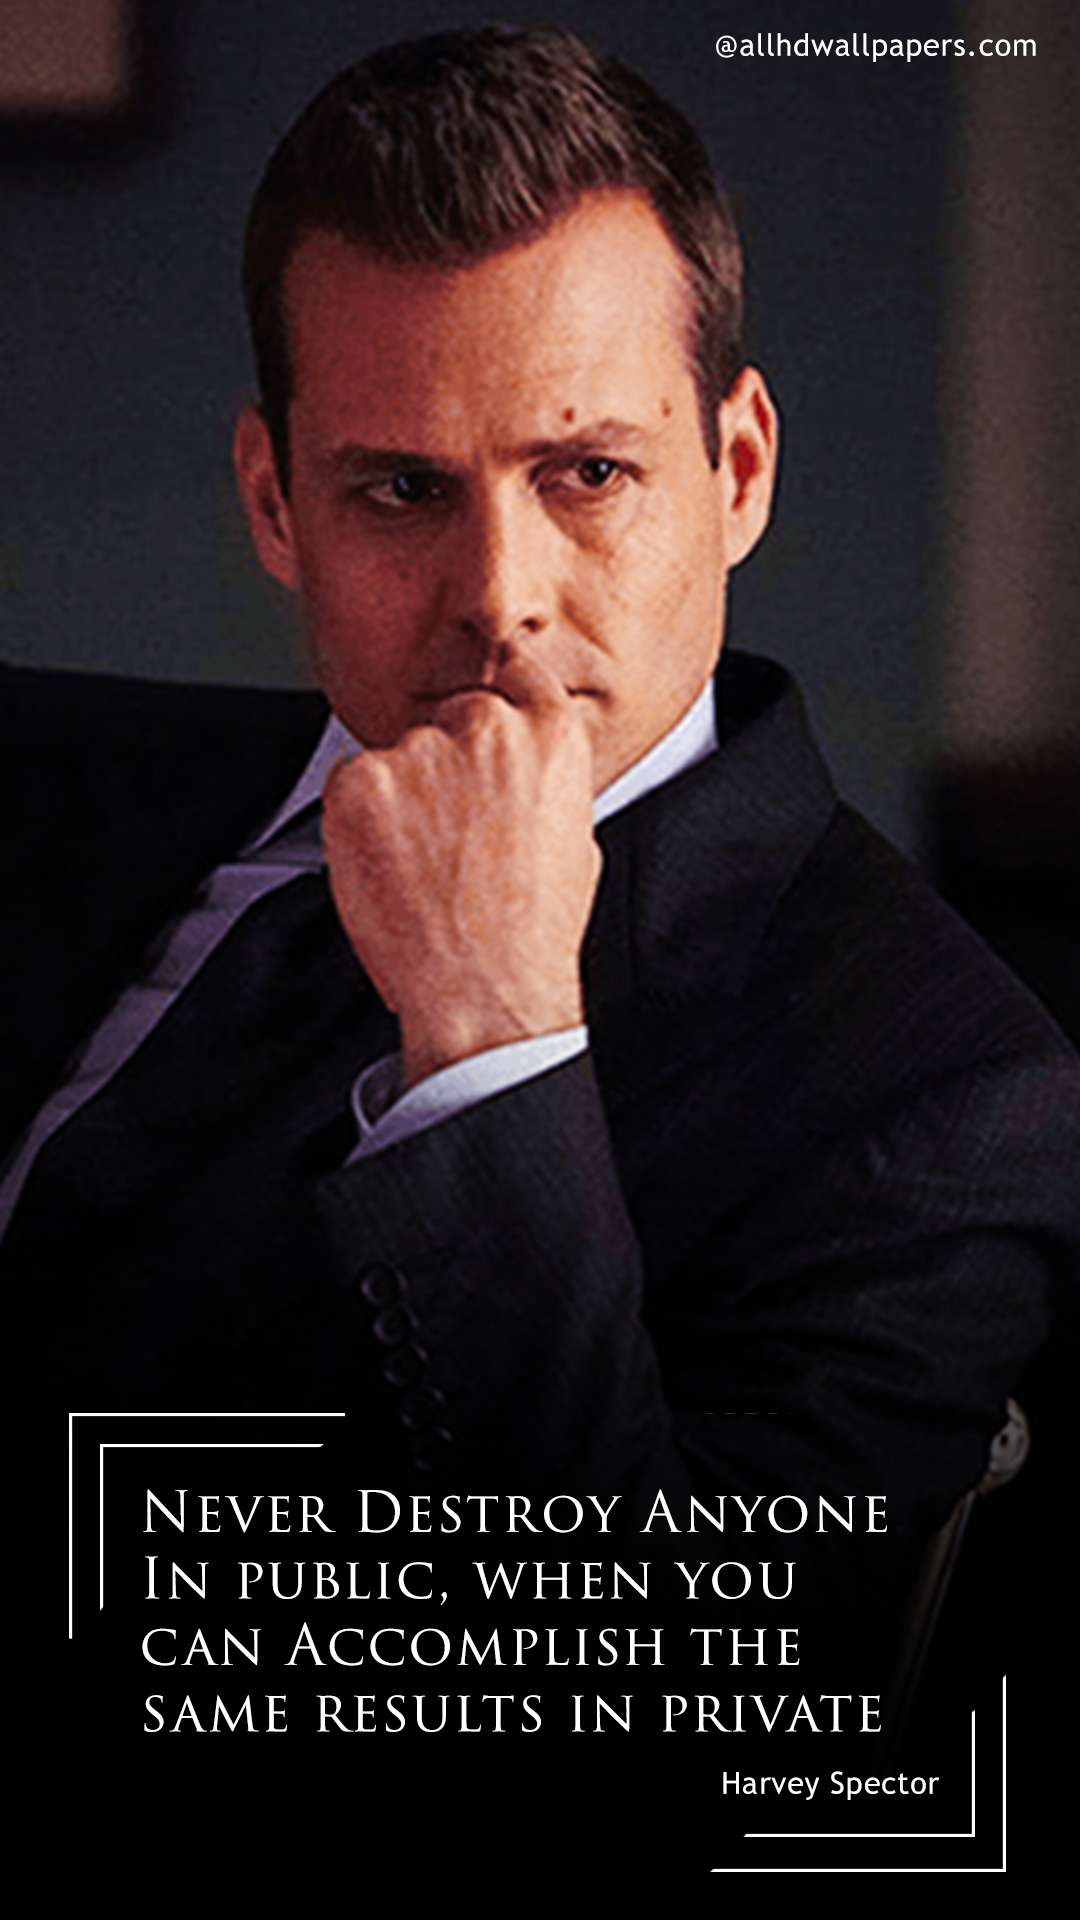 Iphone Sayings Wallpaper 11 Harvey Specter Quotes Will Inspire You To Work Hard